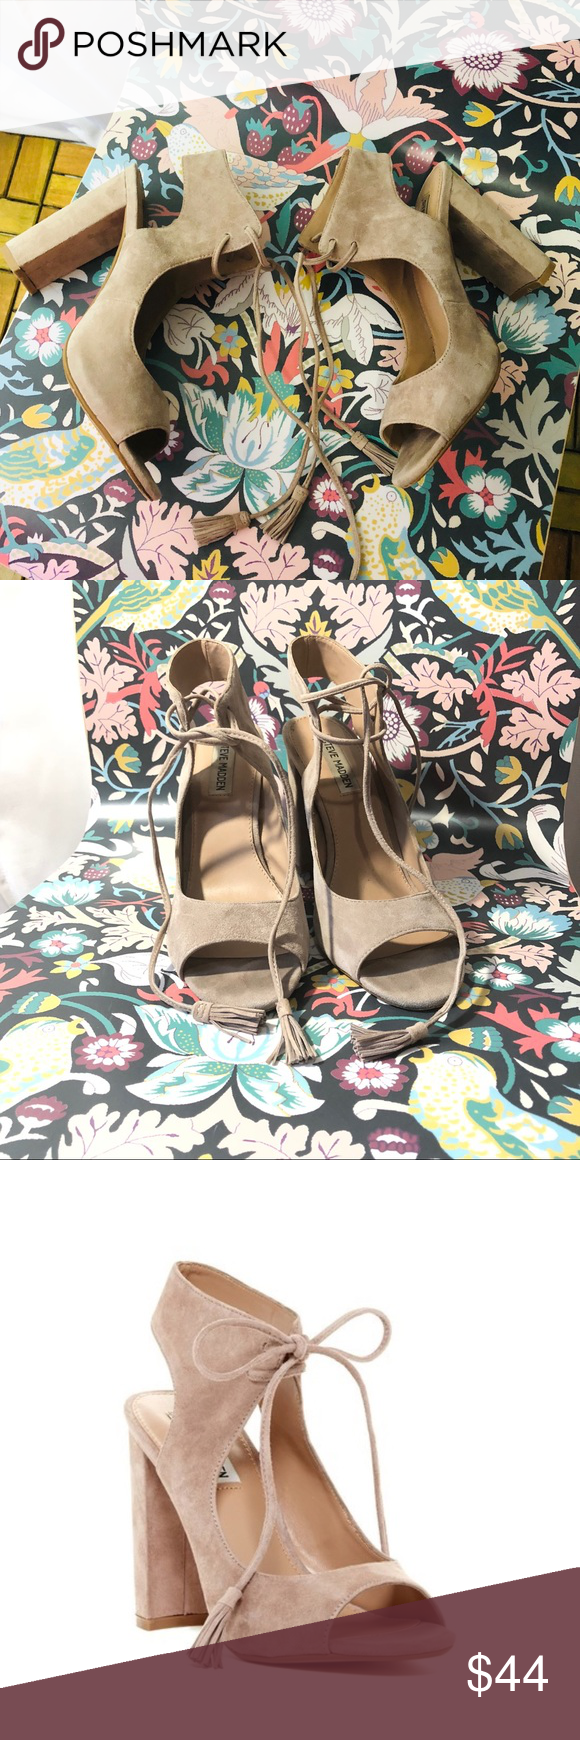 744f5274fbe Steve Madden Taupe Charlea Lace Up Heel Sandal 8.5 Steve Madden Taupe  Charlea Lace Up Block Heel Suede Sandal 8.5 •Tassels accent the ends of  this tie front ...